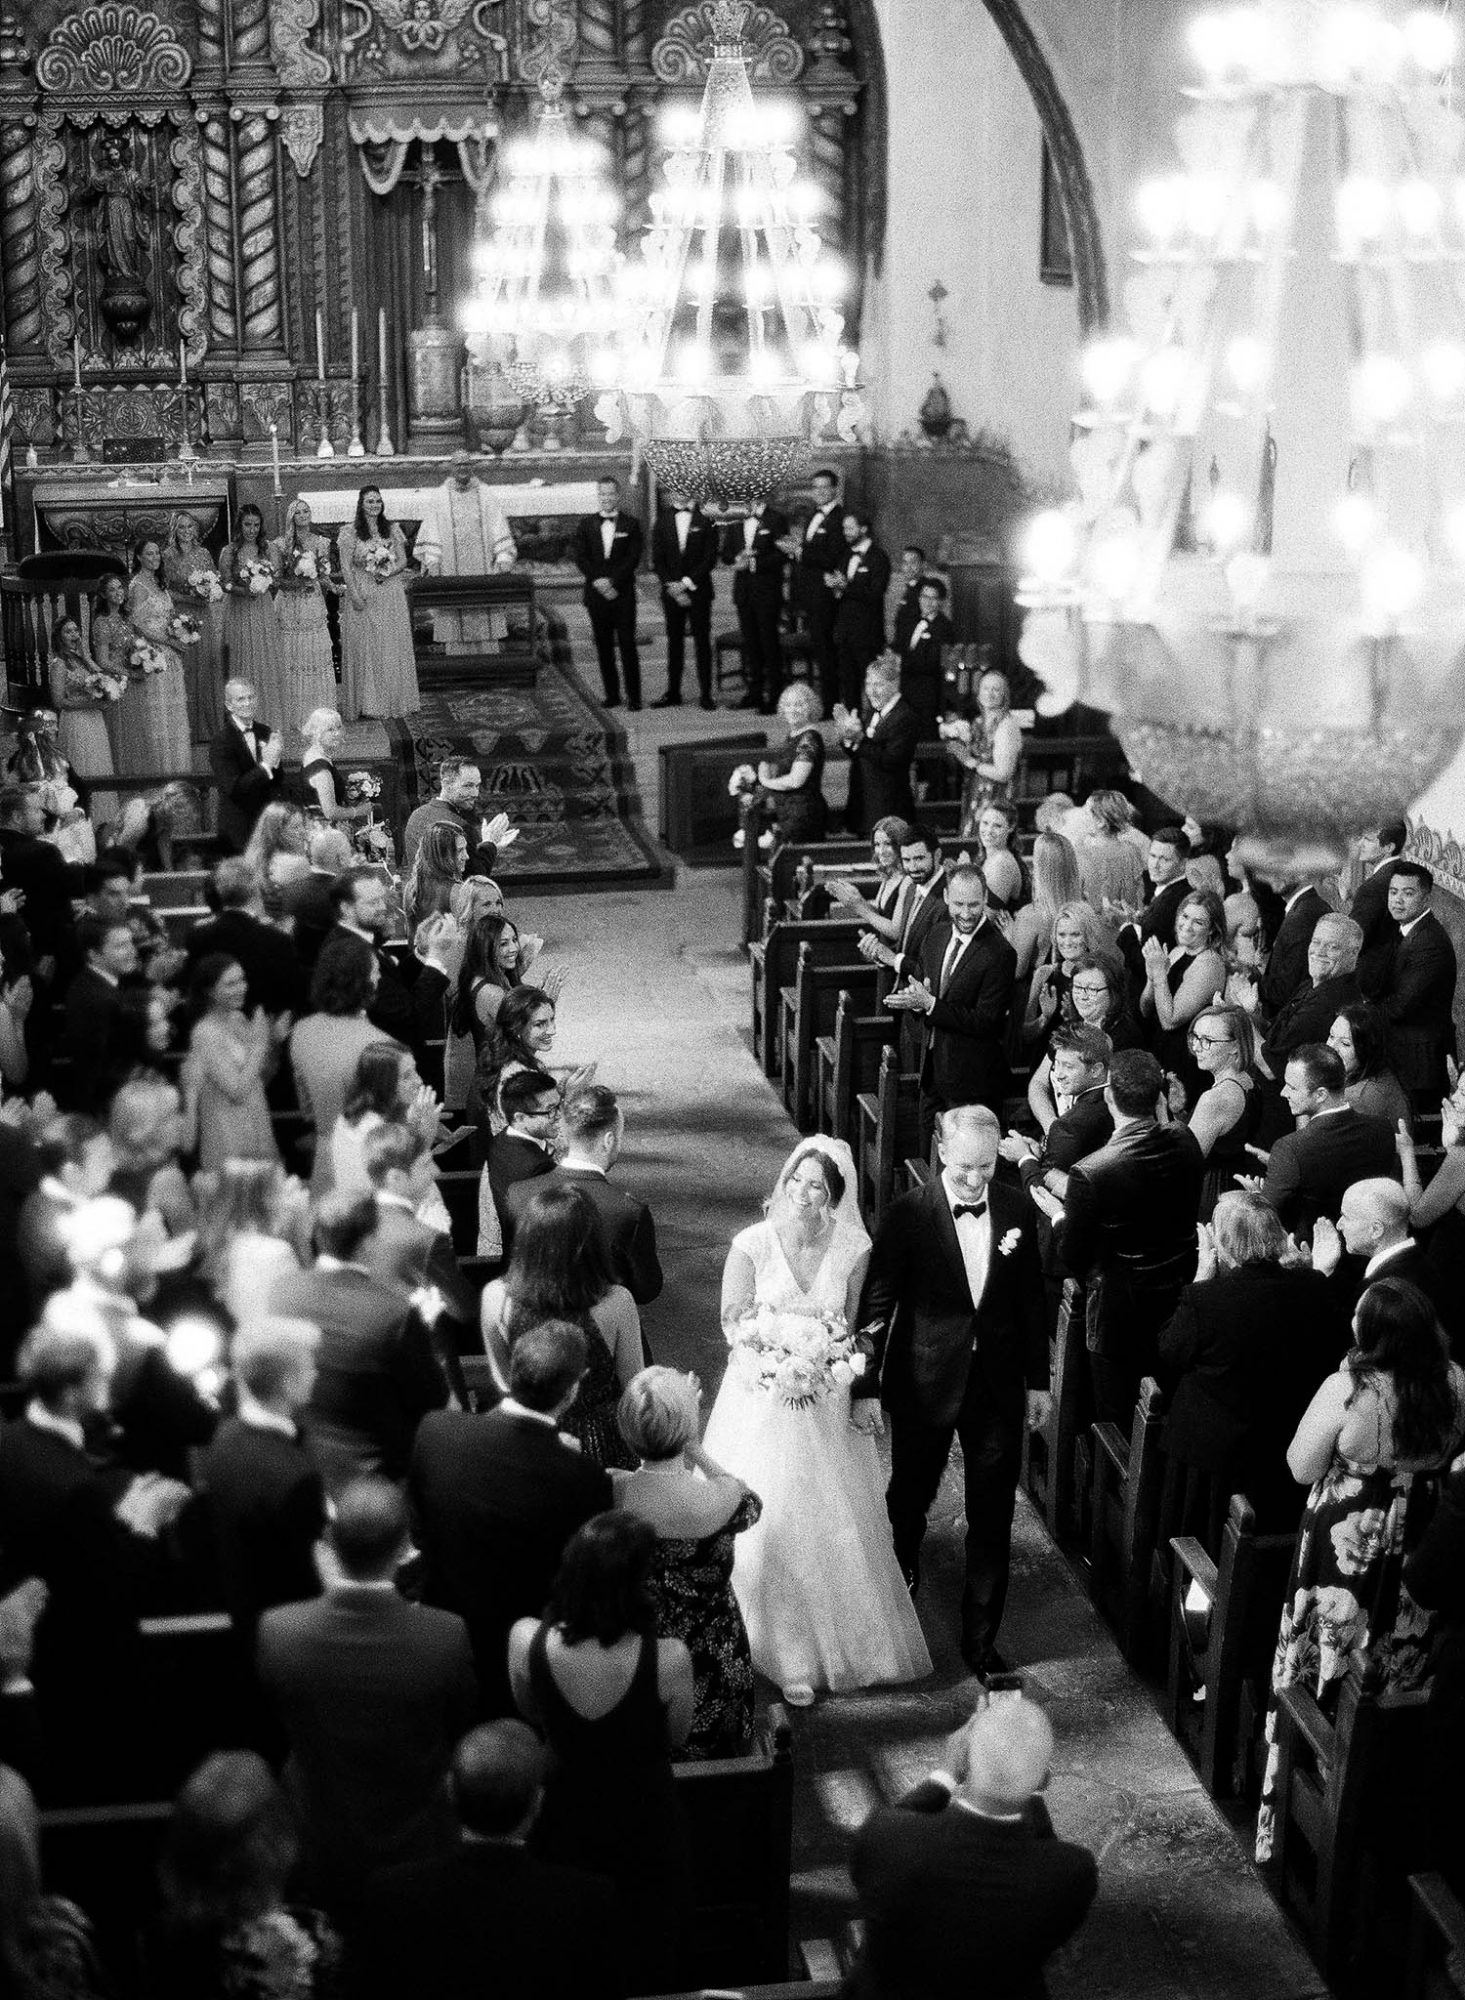 tamara erik wedding church recessional bride groom